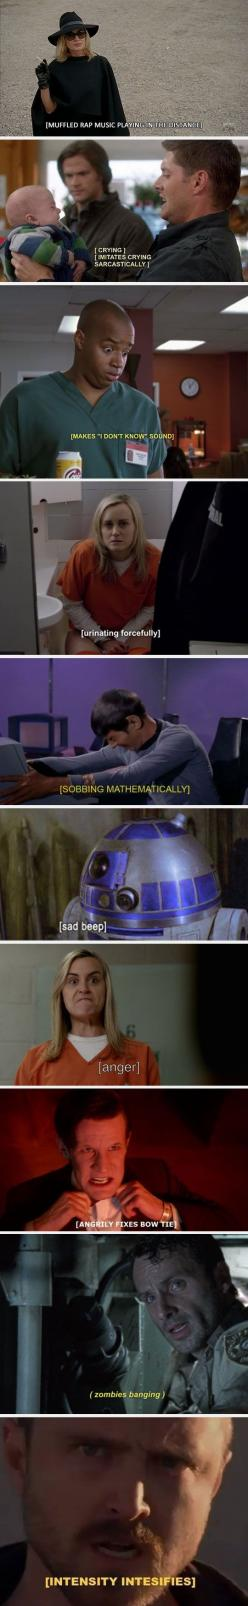 I so love subtitles <3: Sad Beep, Hilarious Subtitles, Supernatural Subtitles, Awesome Subtitles, Funny Stuff, Funny Quotes, Netflix Subtitles, Funny Subtitles